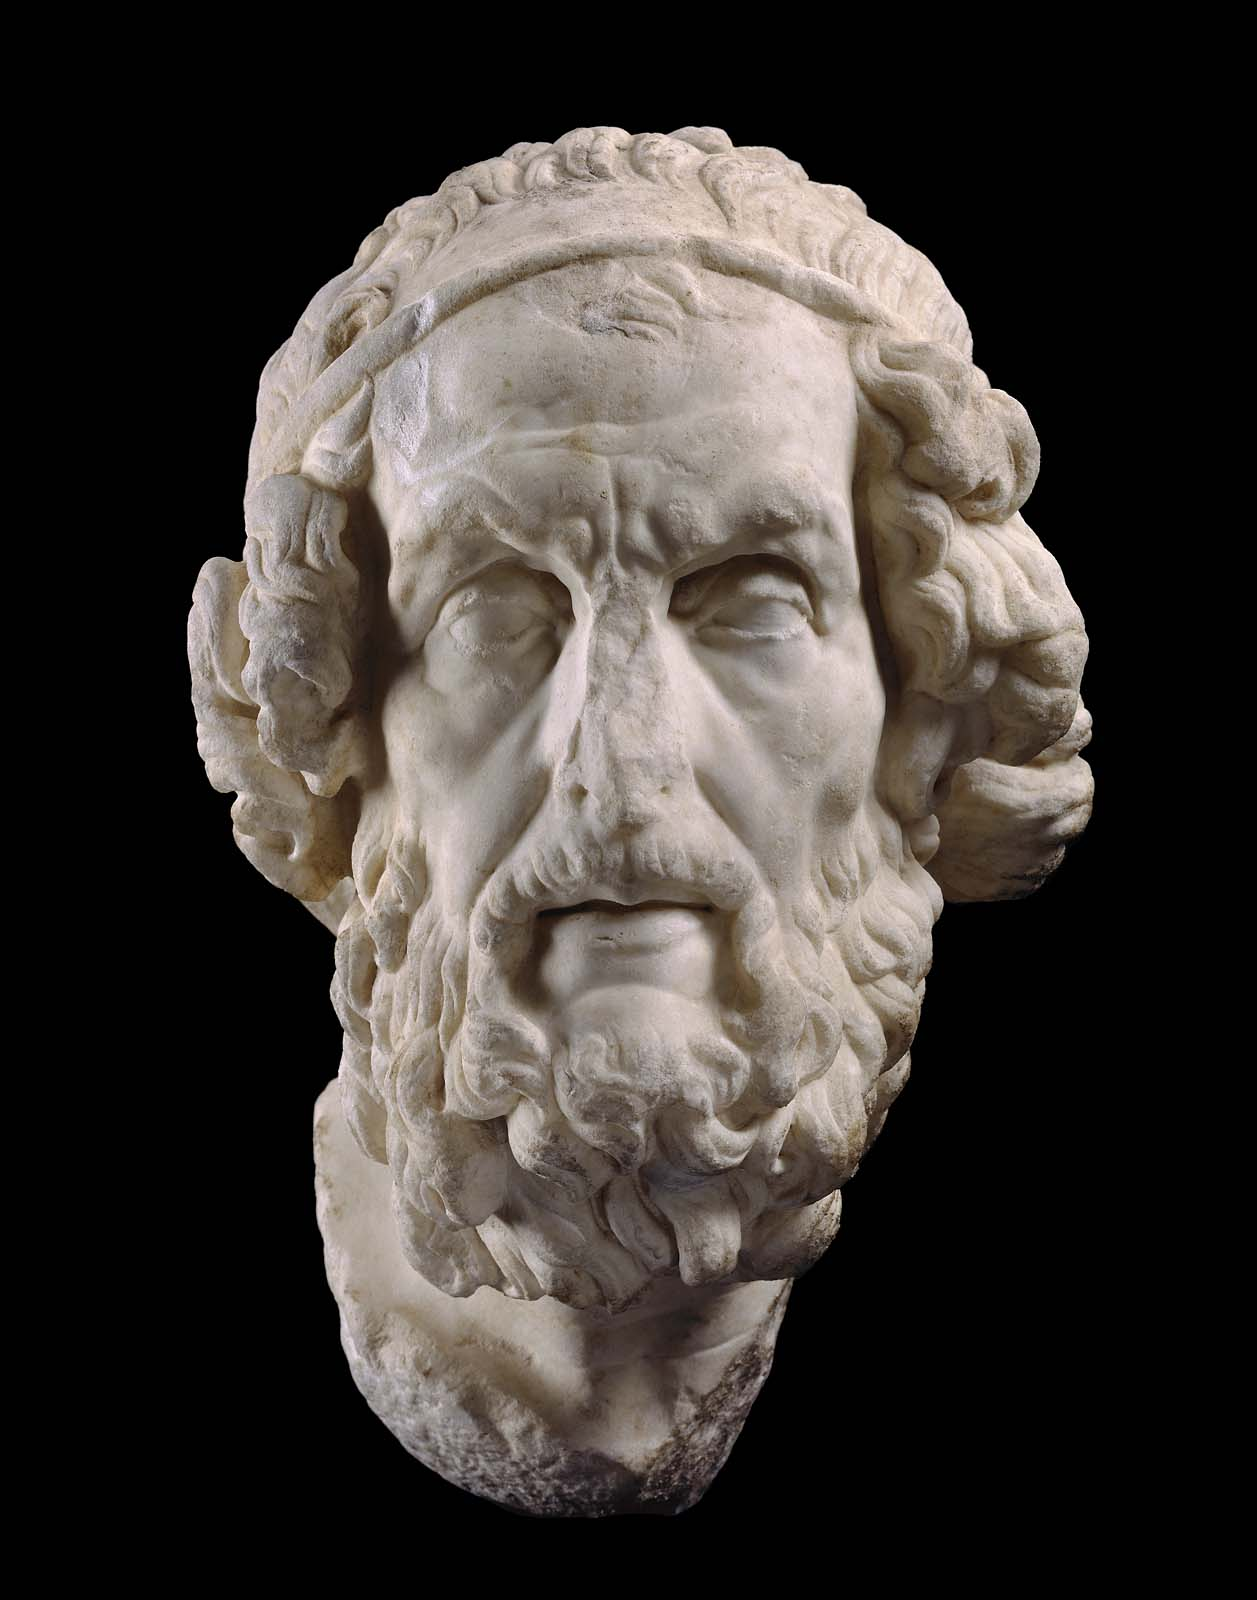 Homer, C. 100 BC. Marble. Museum of Fine Arts Boston.  Source:http://www.mfa.org/collections/object/homer-151122